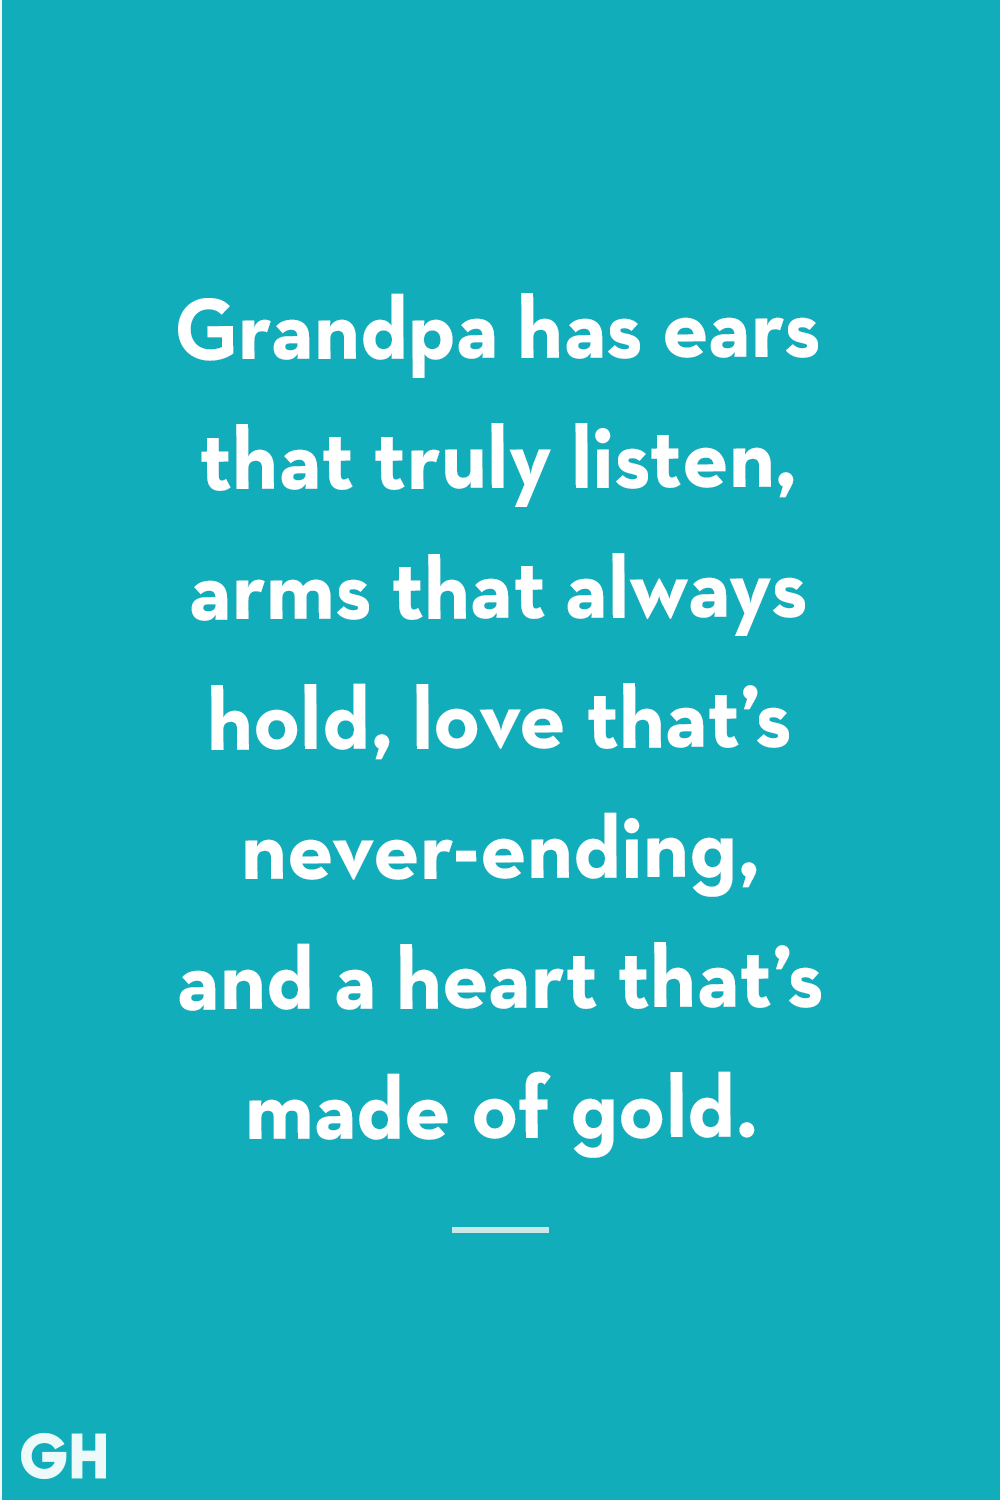 best grandpa quotes sayings and quotes about grandfathers